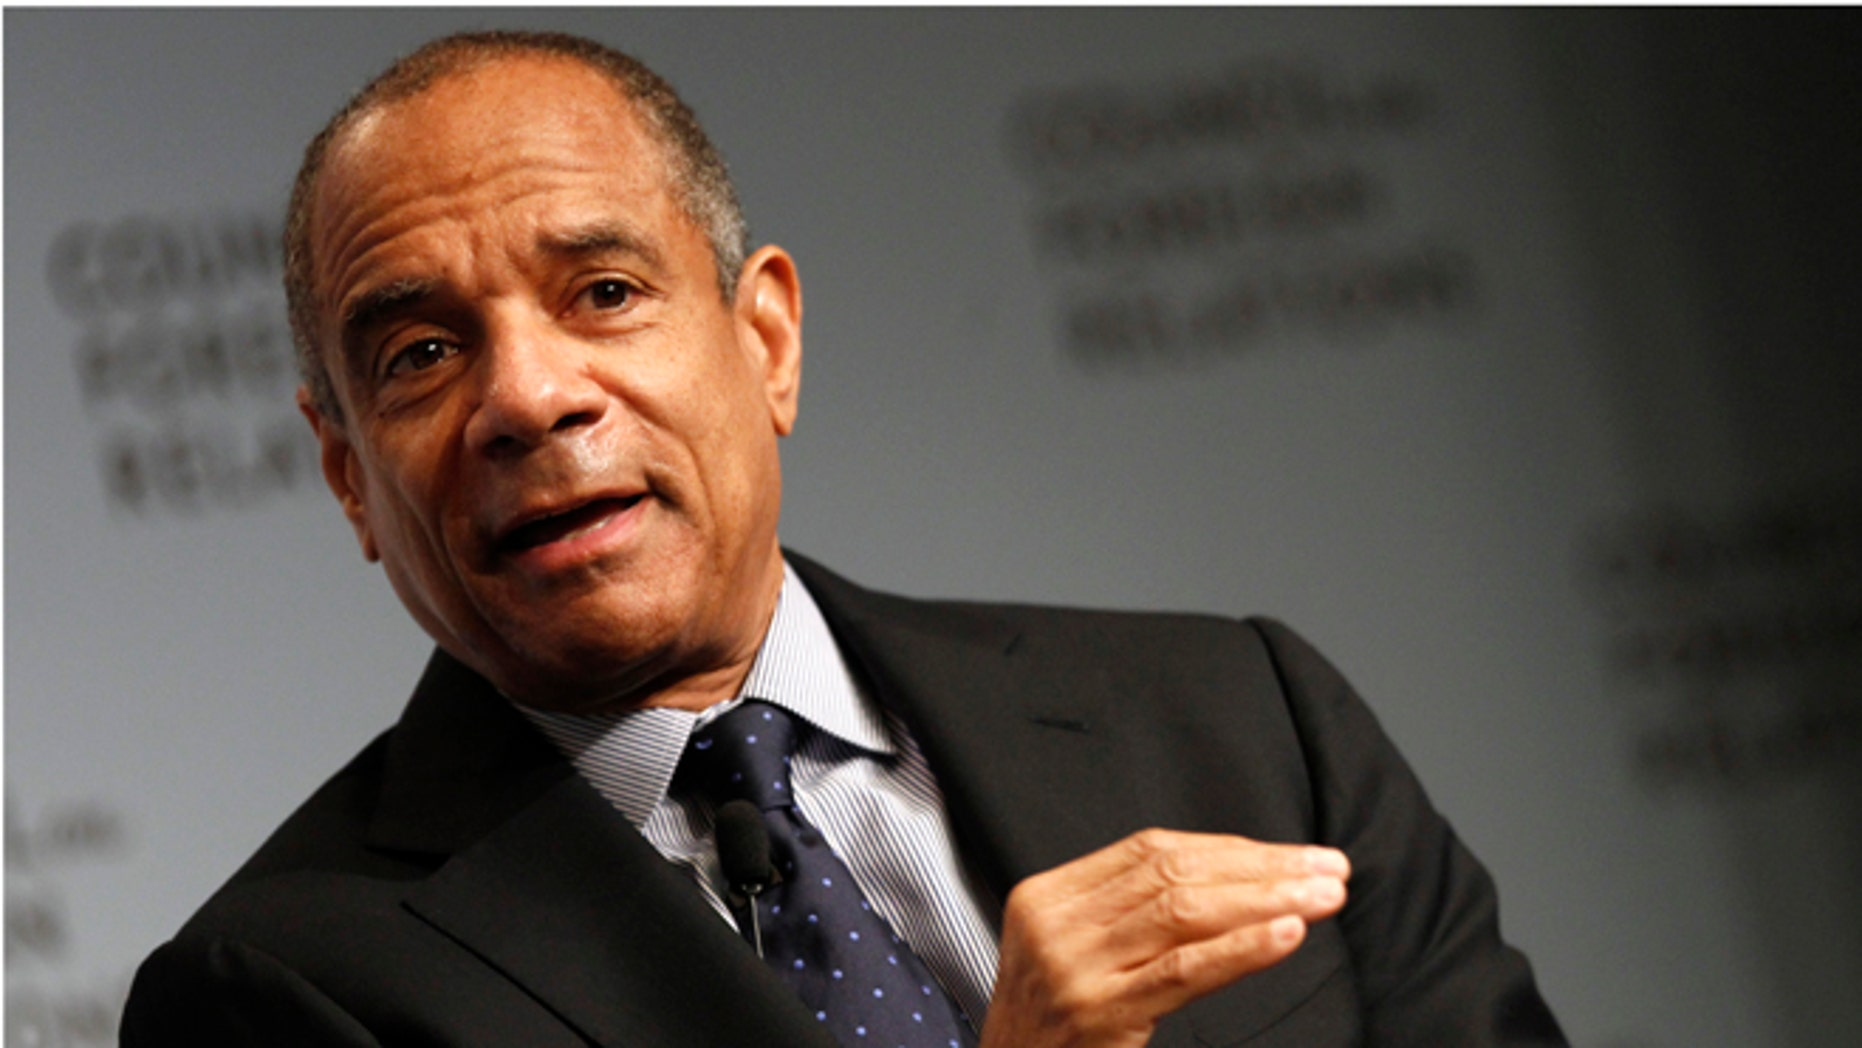 FILE: December 6, 2011: Chairman and CEO of American Express Company Kenneth Chenault speaks to the Council on Foreign Relations in New York.